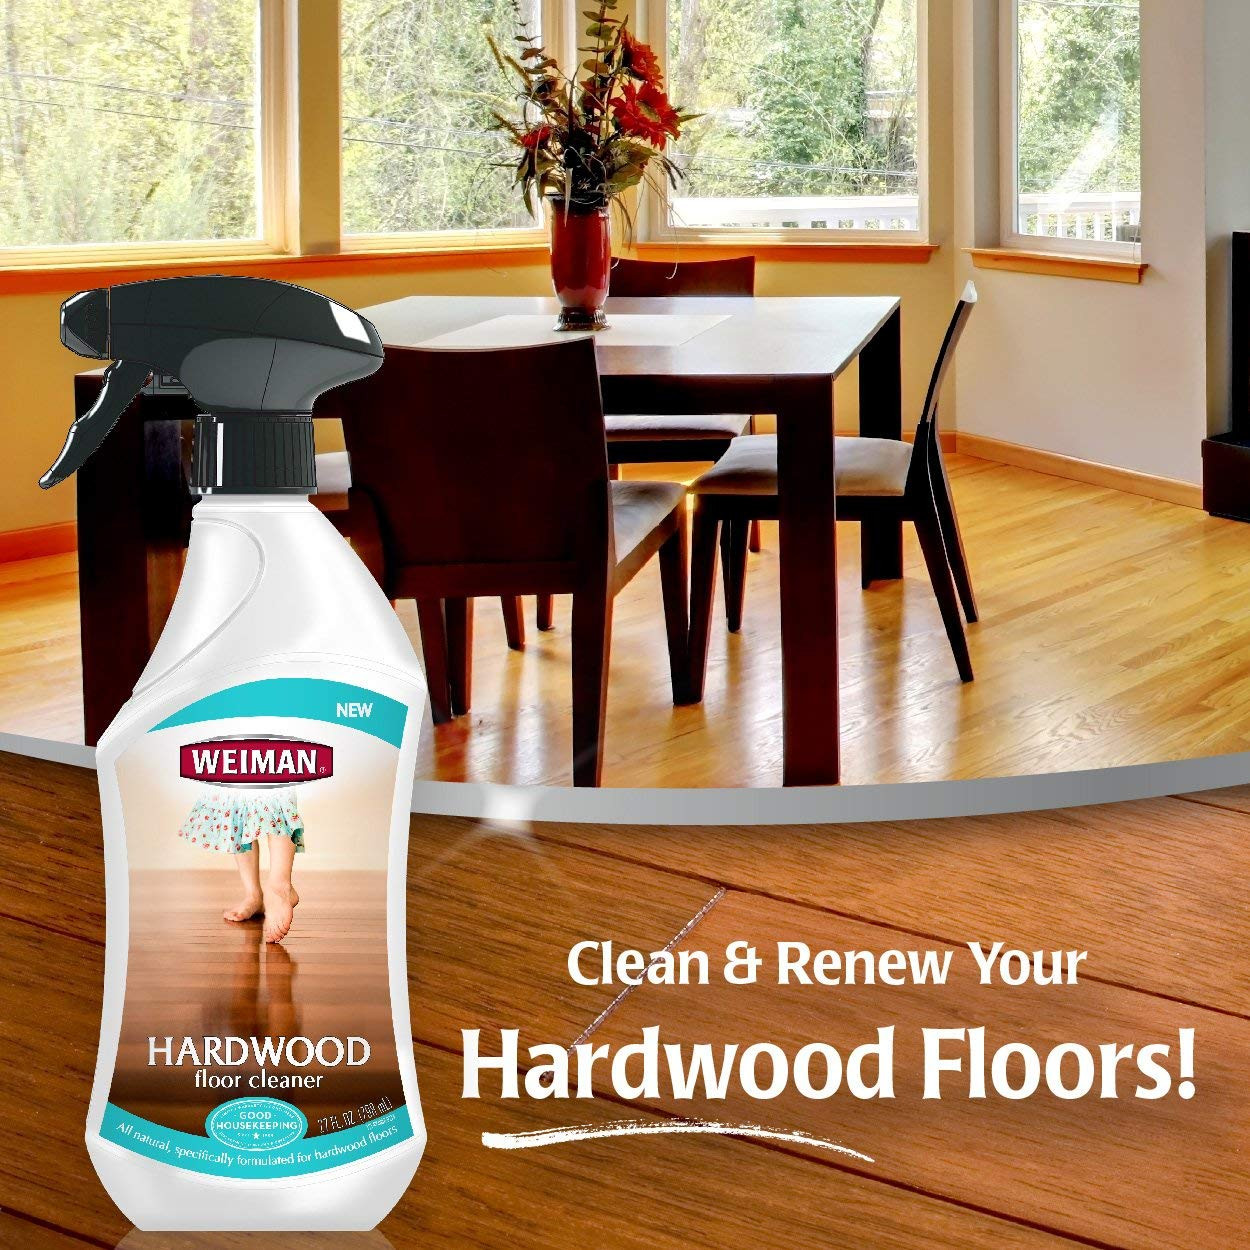 Quality Hardwood Floors Reviews Of Amazon Com Weiman Hardwood Floor Cleaner Surface Safe No Harsh Inside Amazon Com Weiman Hardwood Floor Cleaner Surface Safe No Harsh Scent Safe for Use Around Kids and Pets Residue Free 27 Oz Trigger Home Kitchen